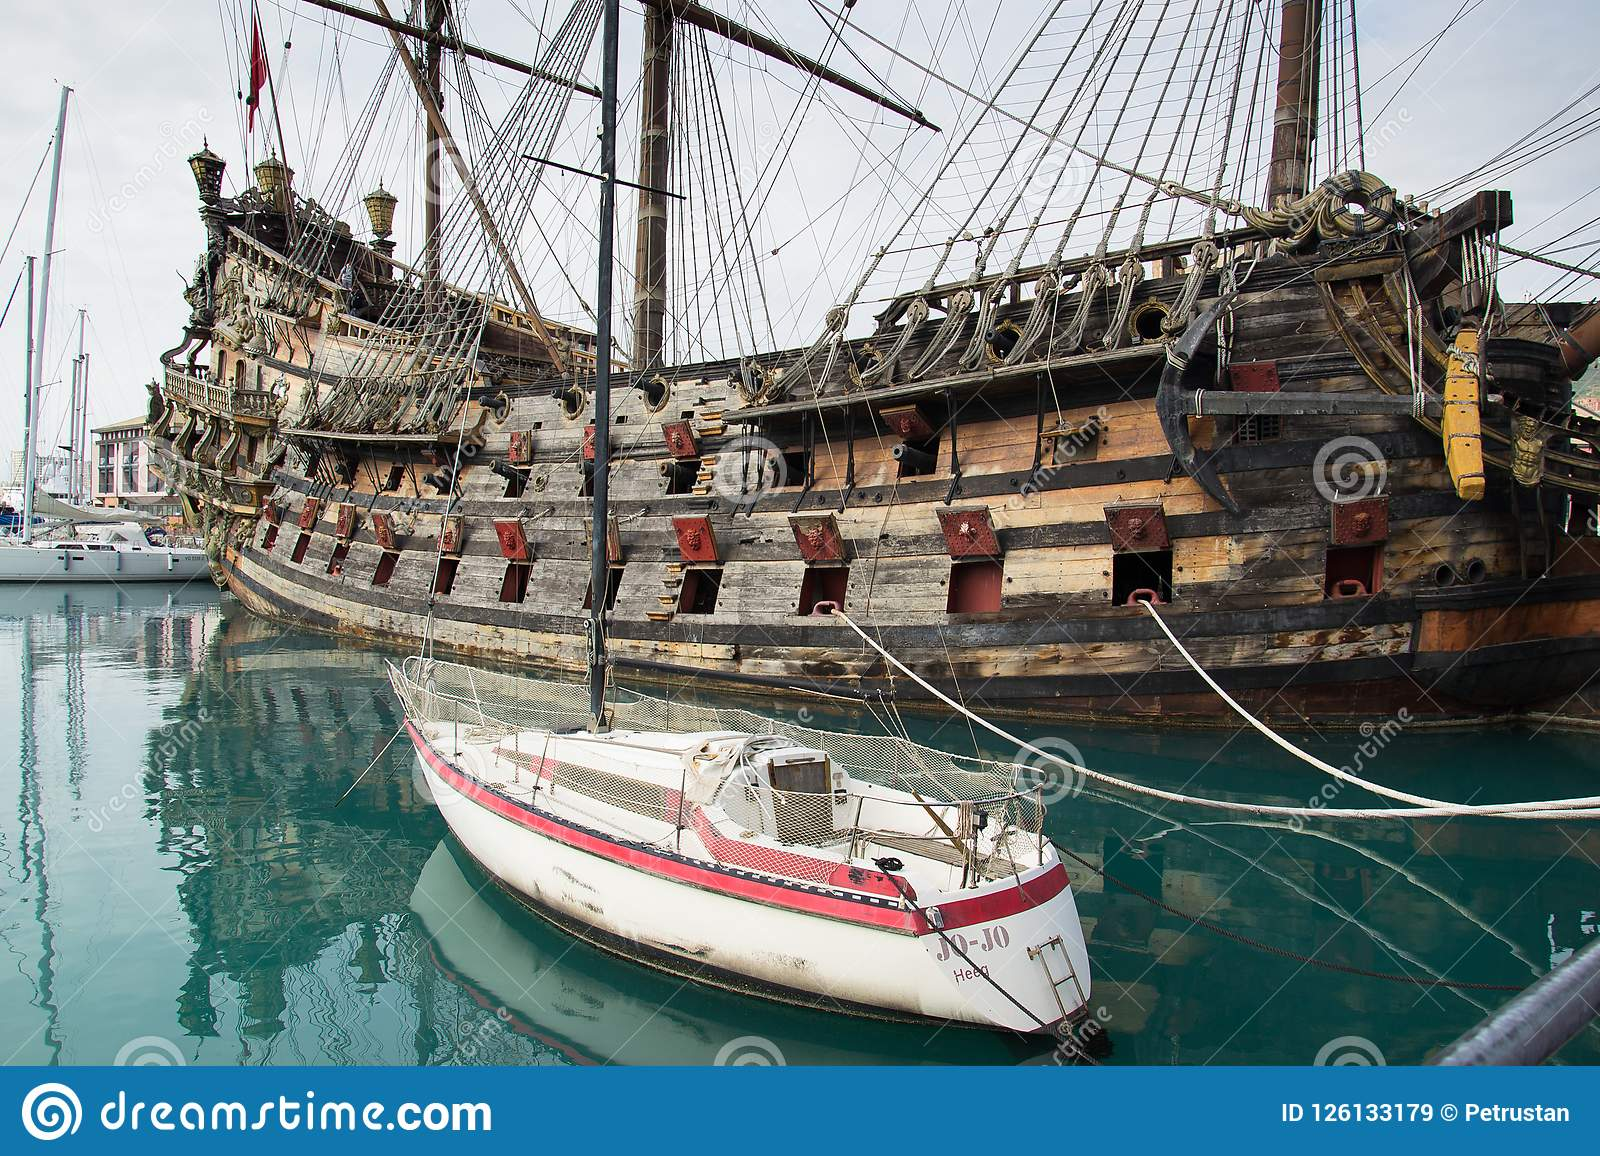 Il Galeone Neptune pirate ship in Genoa Porto Antico (Old harbor